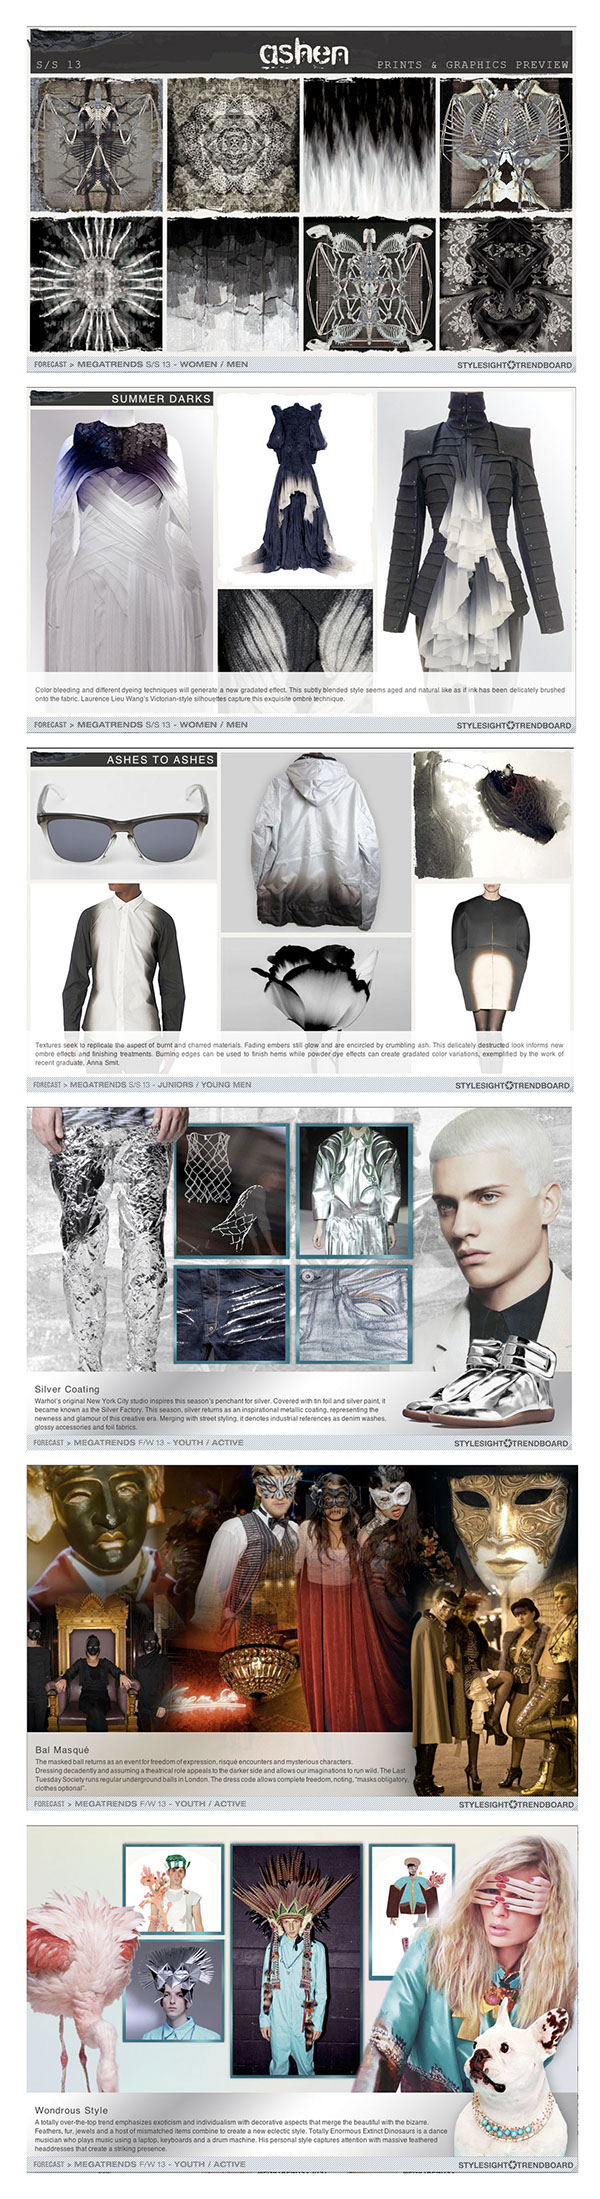 research papers on visual merchandising Read merchandising essays and research papers view and download complete sample merchandising essays, instructions, works cited pages, and more.